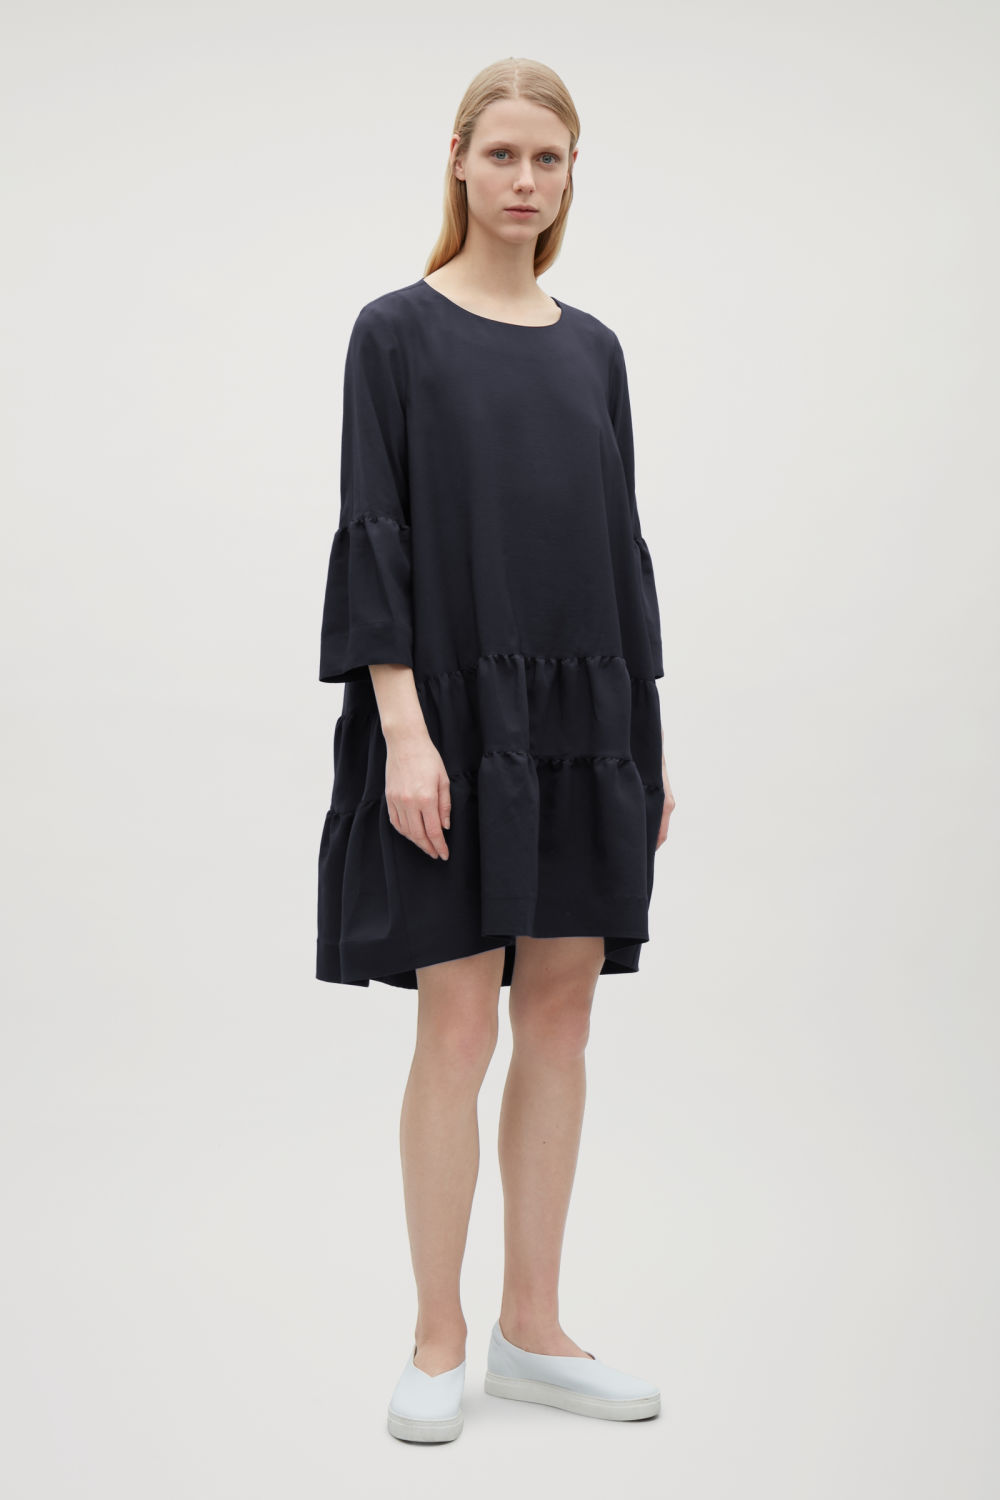 COS GATHERED A-LINE DRESS,Navy